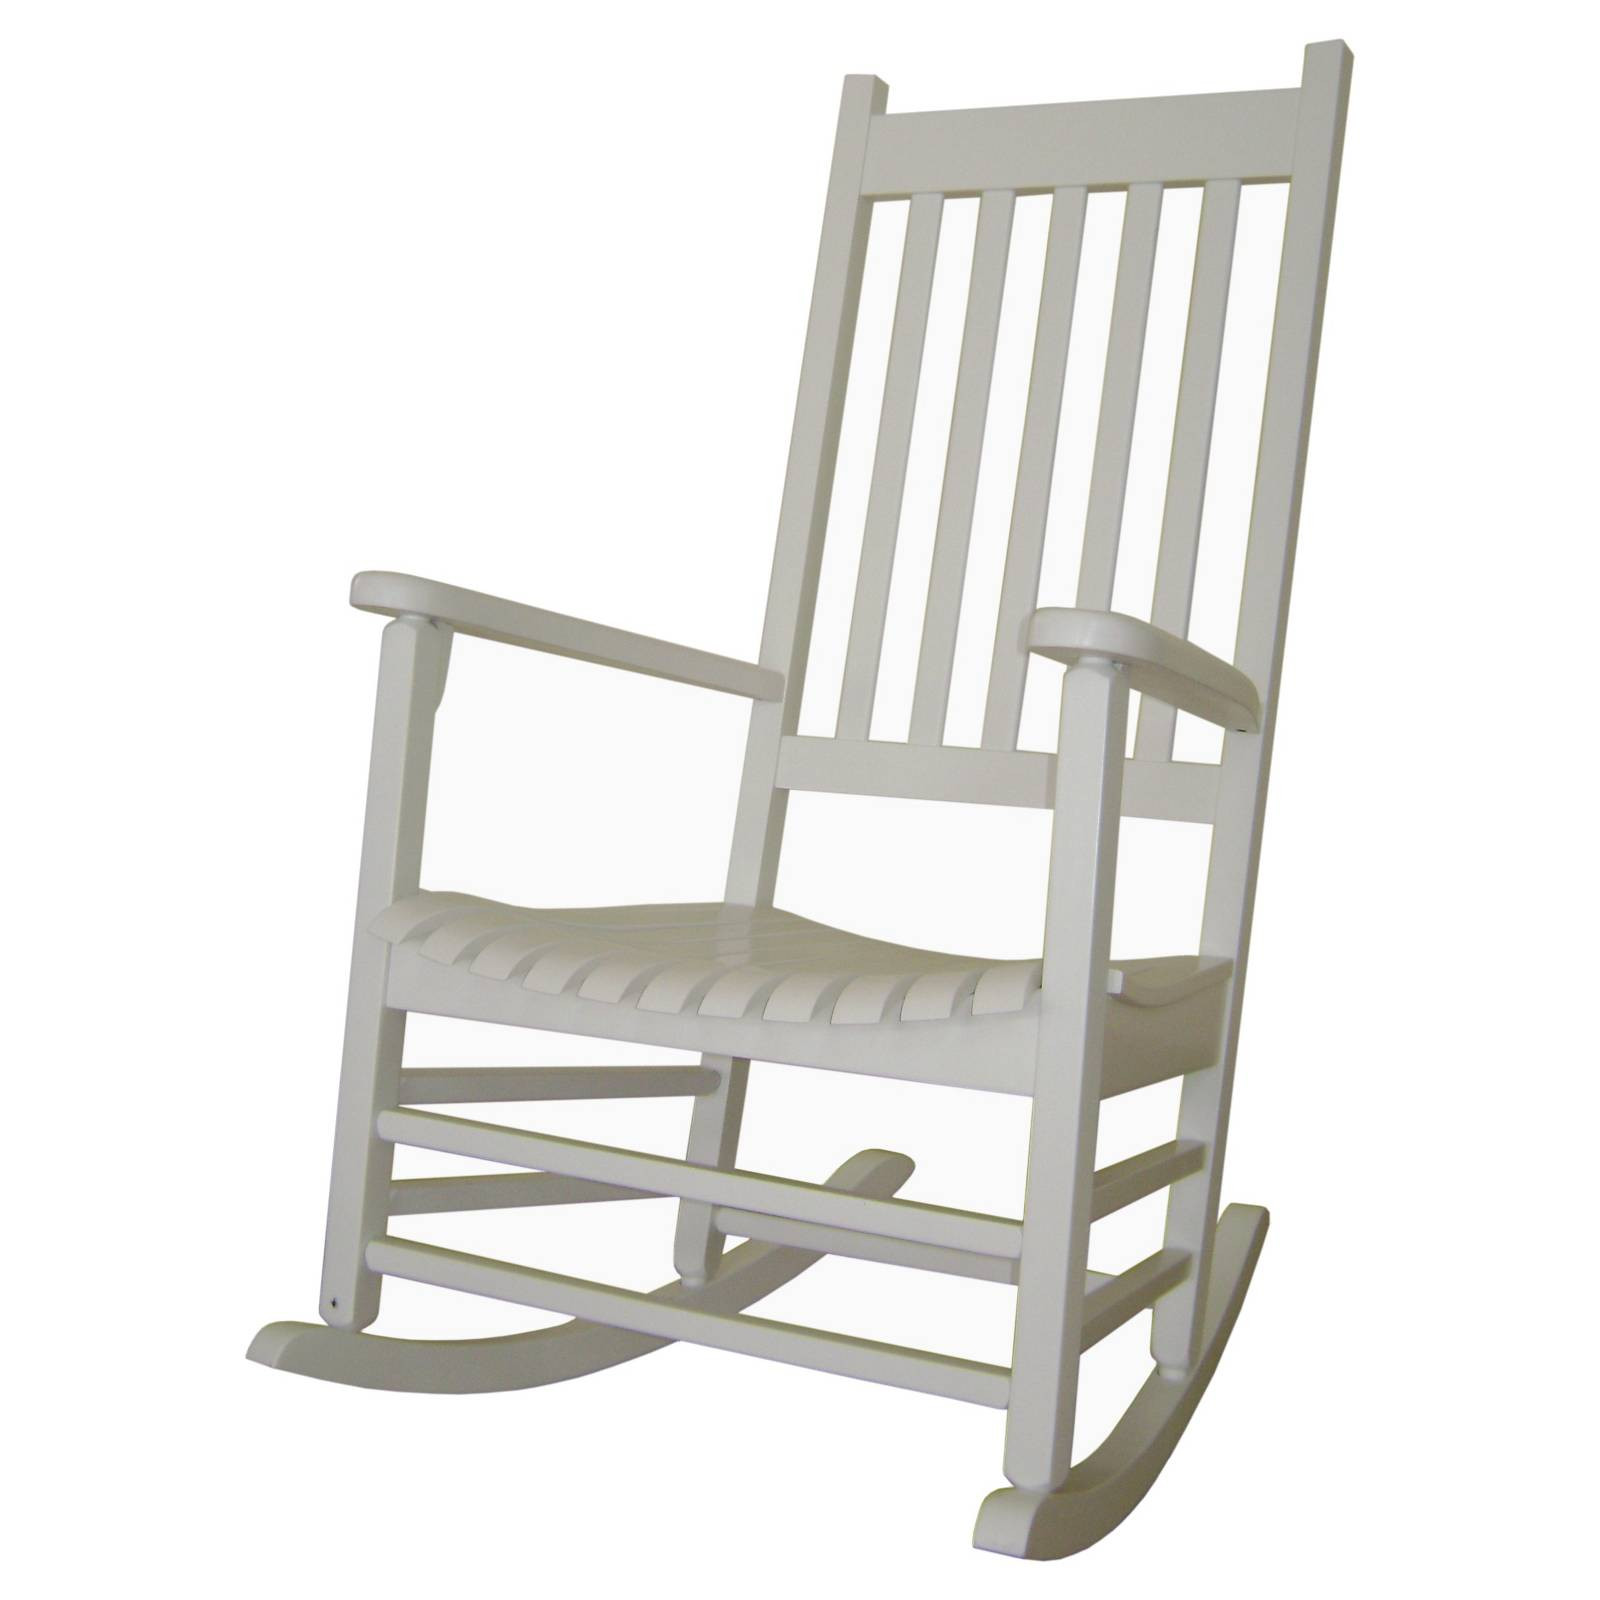 Best ideas about Outdoor Rocking Chairs . Save or Pin International Concept Patio Rocking Chair Now.